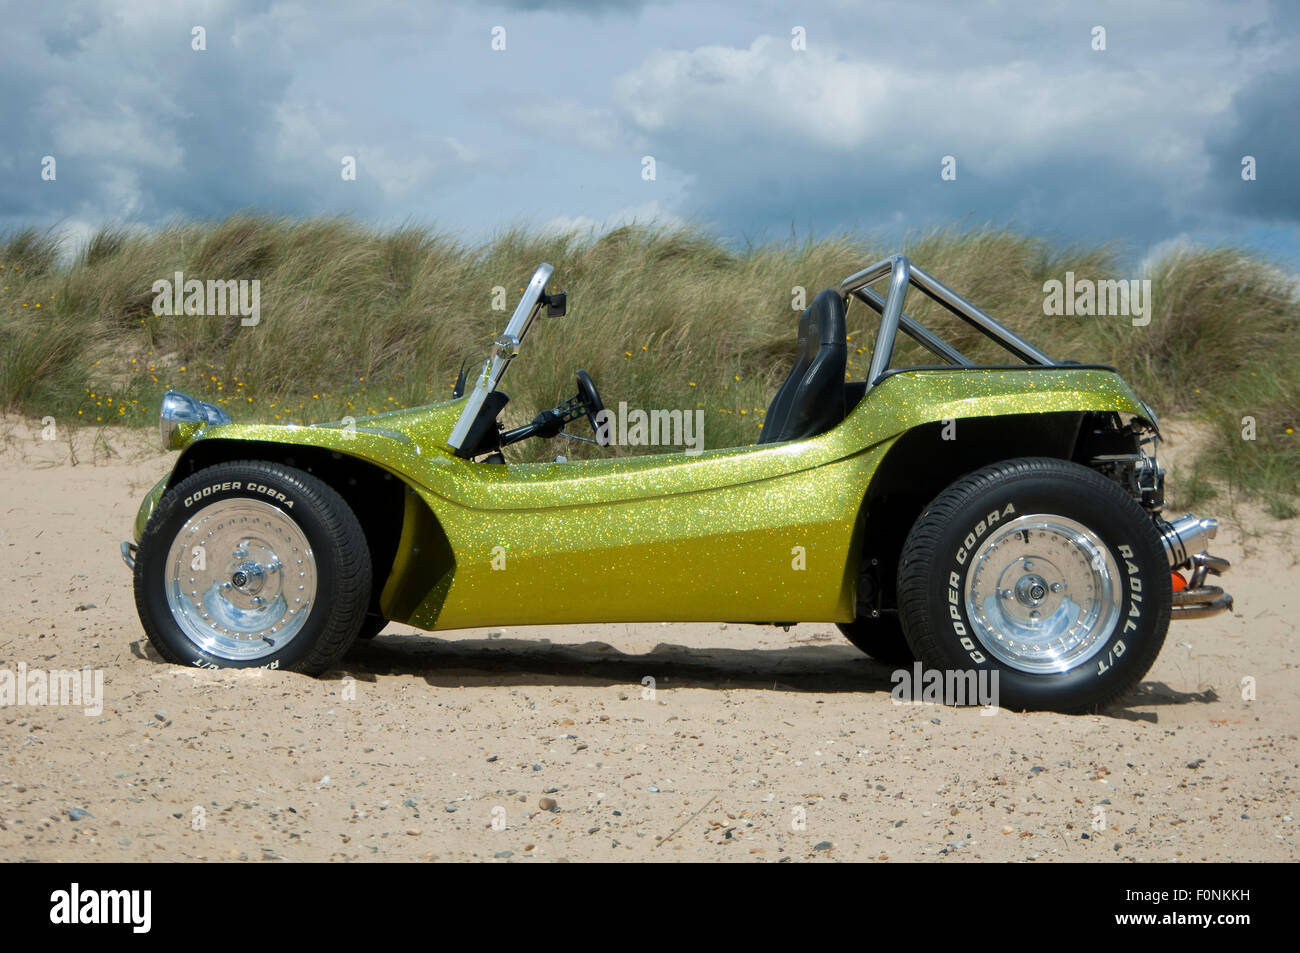 ... Photo - Beach buggy on a sandy beach. VW Beetle based dune buggy car